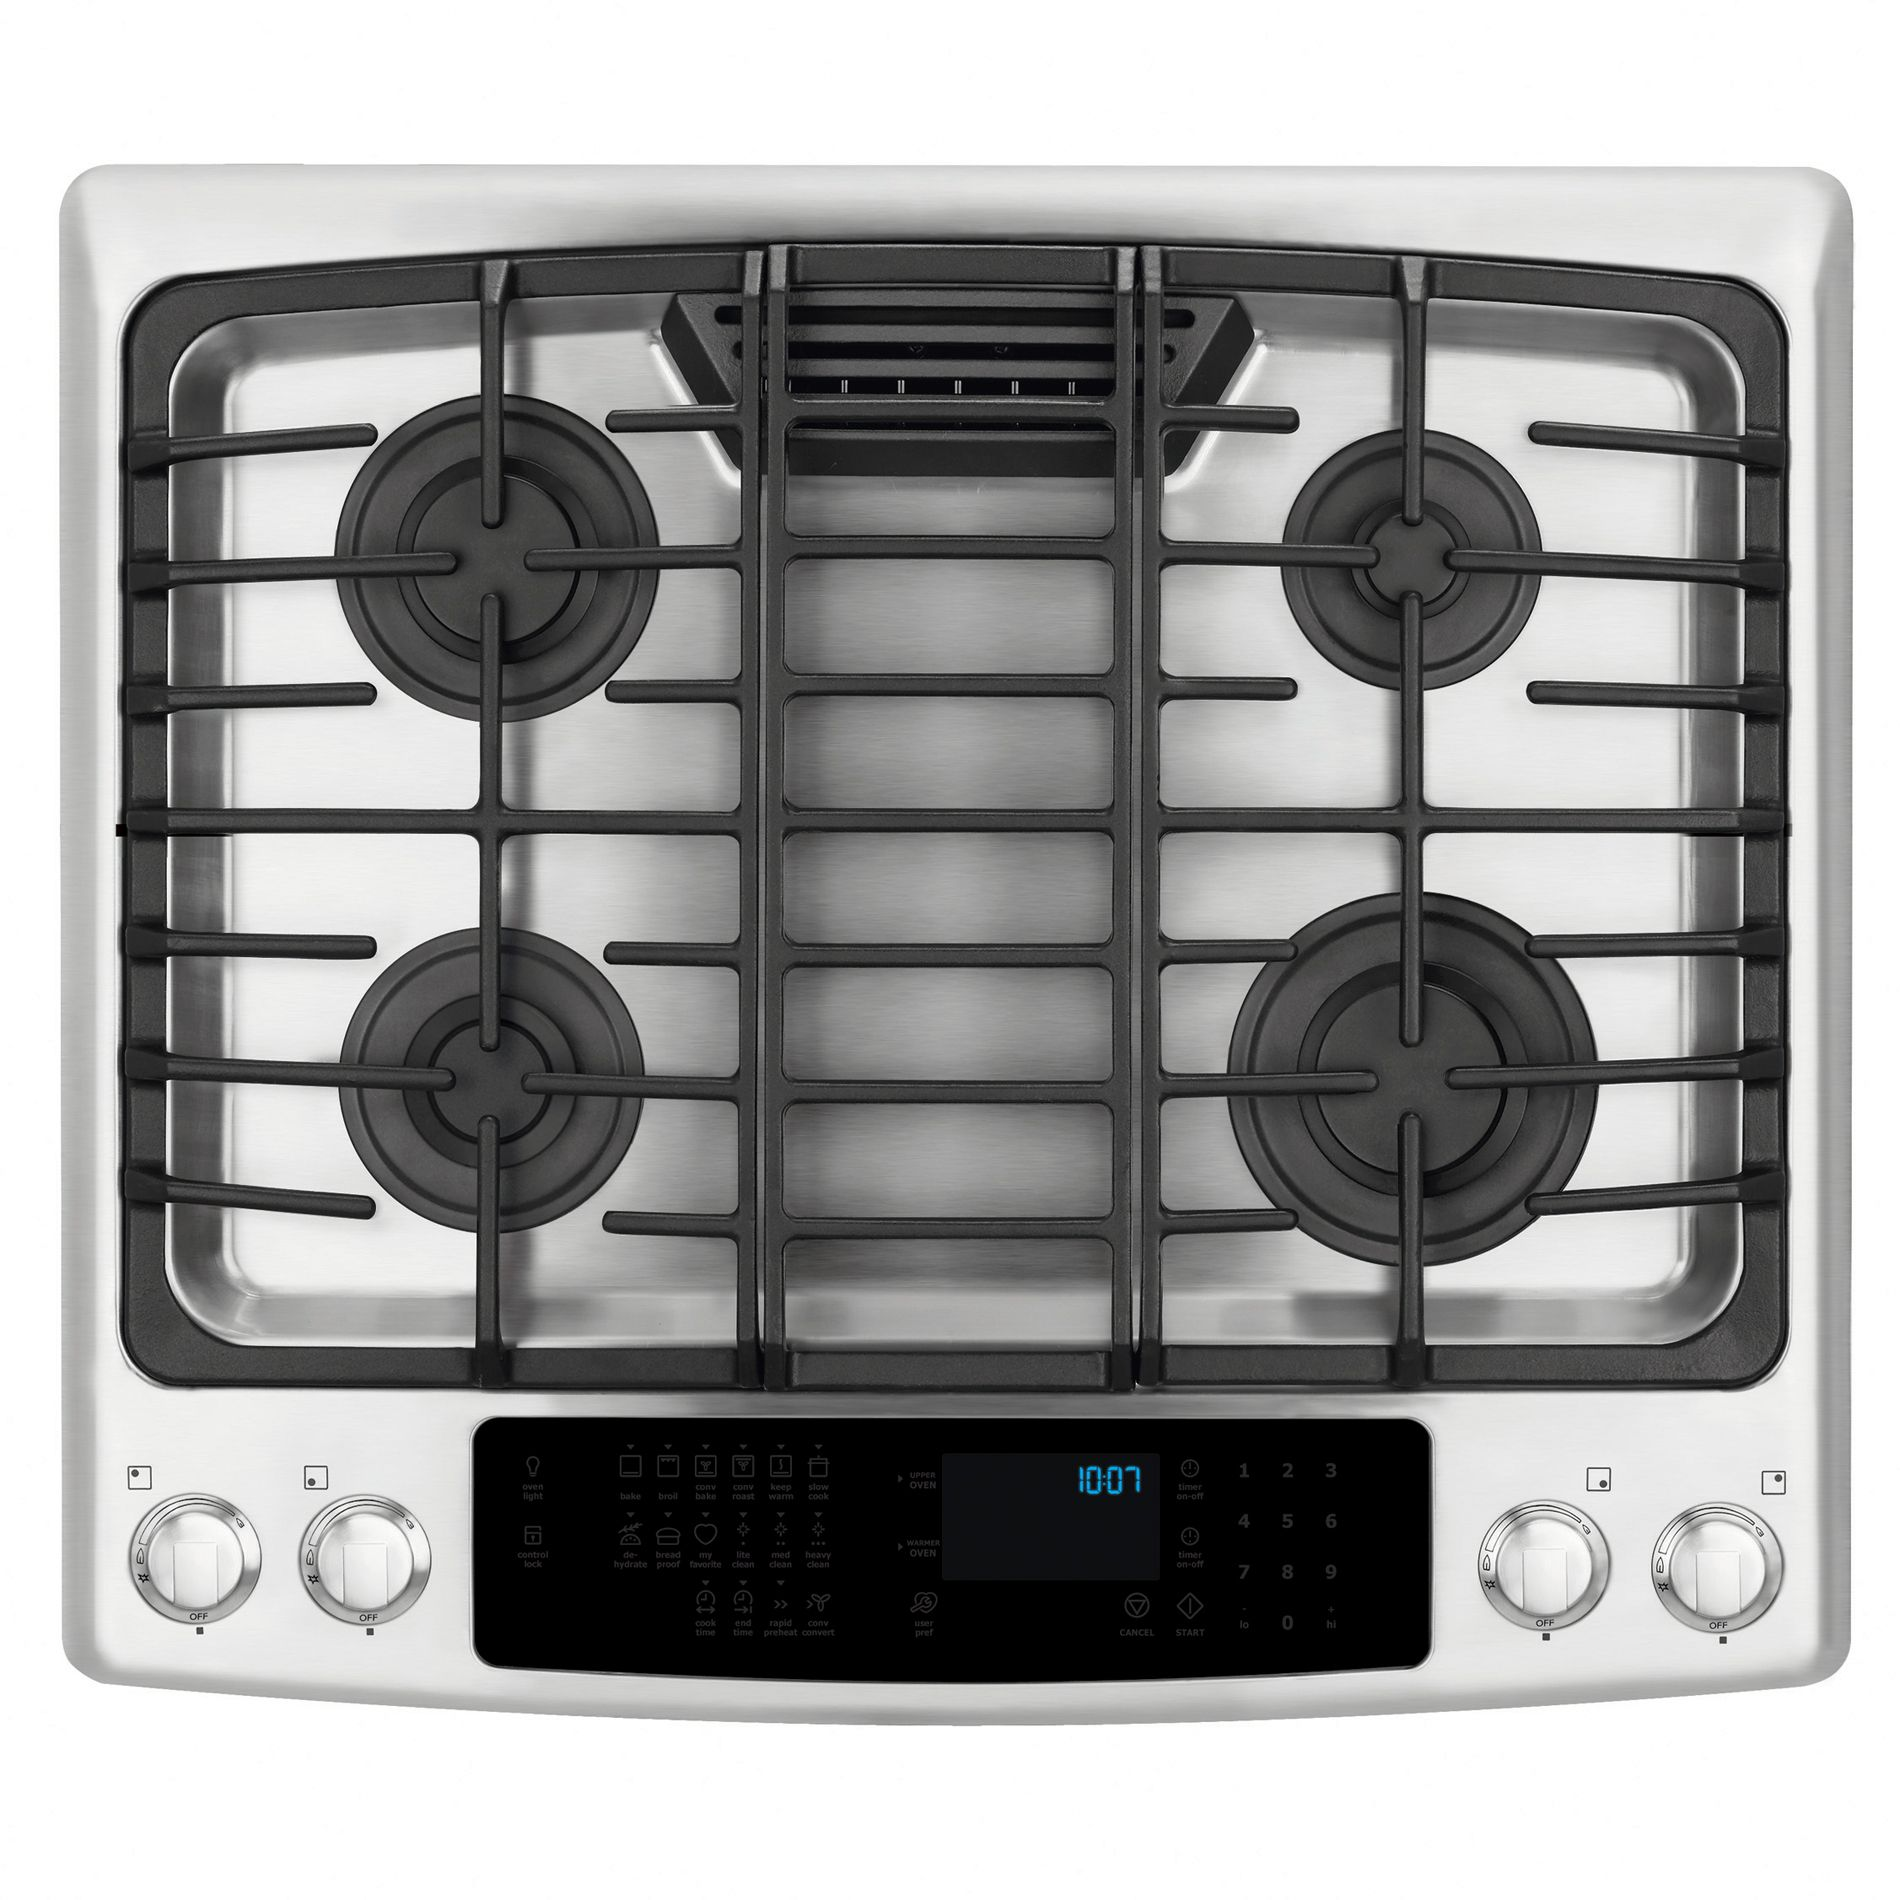 "Electrolux 30"" Slide-In Gas Range w/ IQ-Touch™ Controls - Stainless Steel"